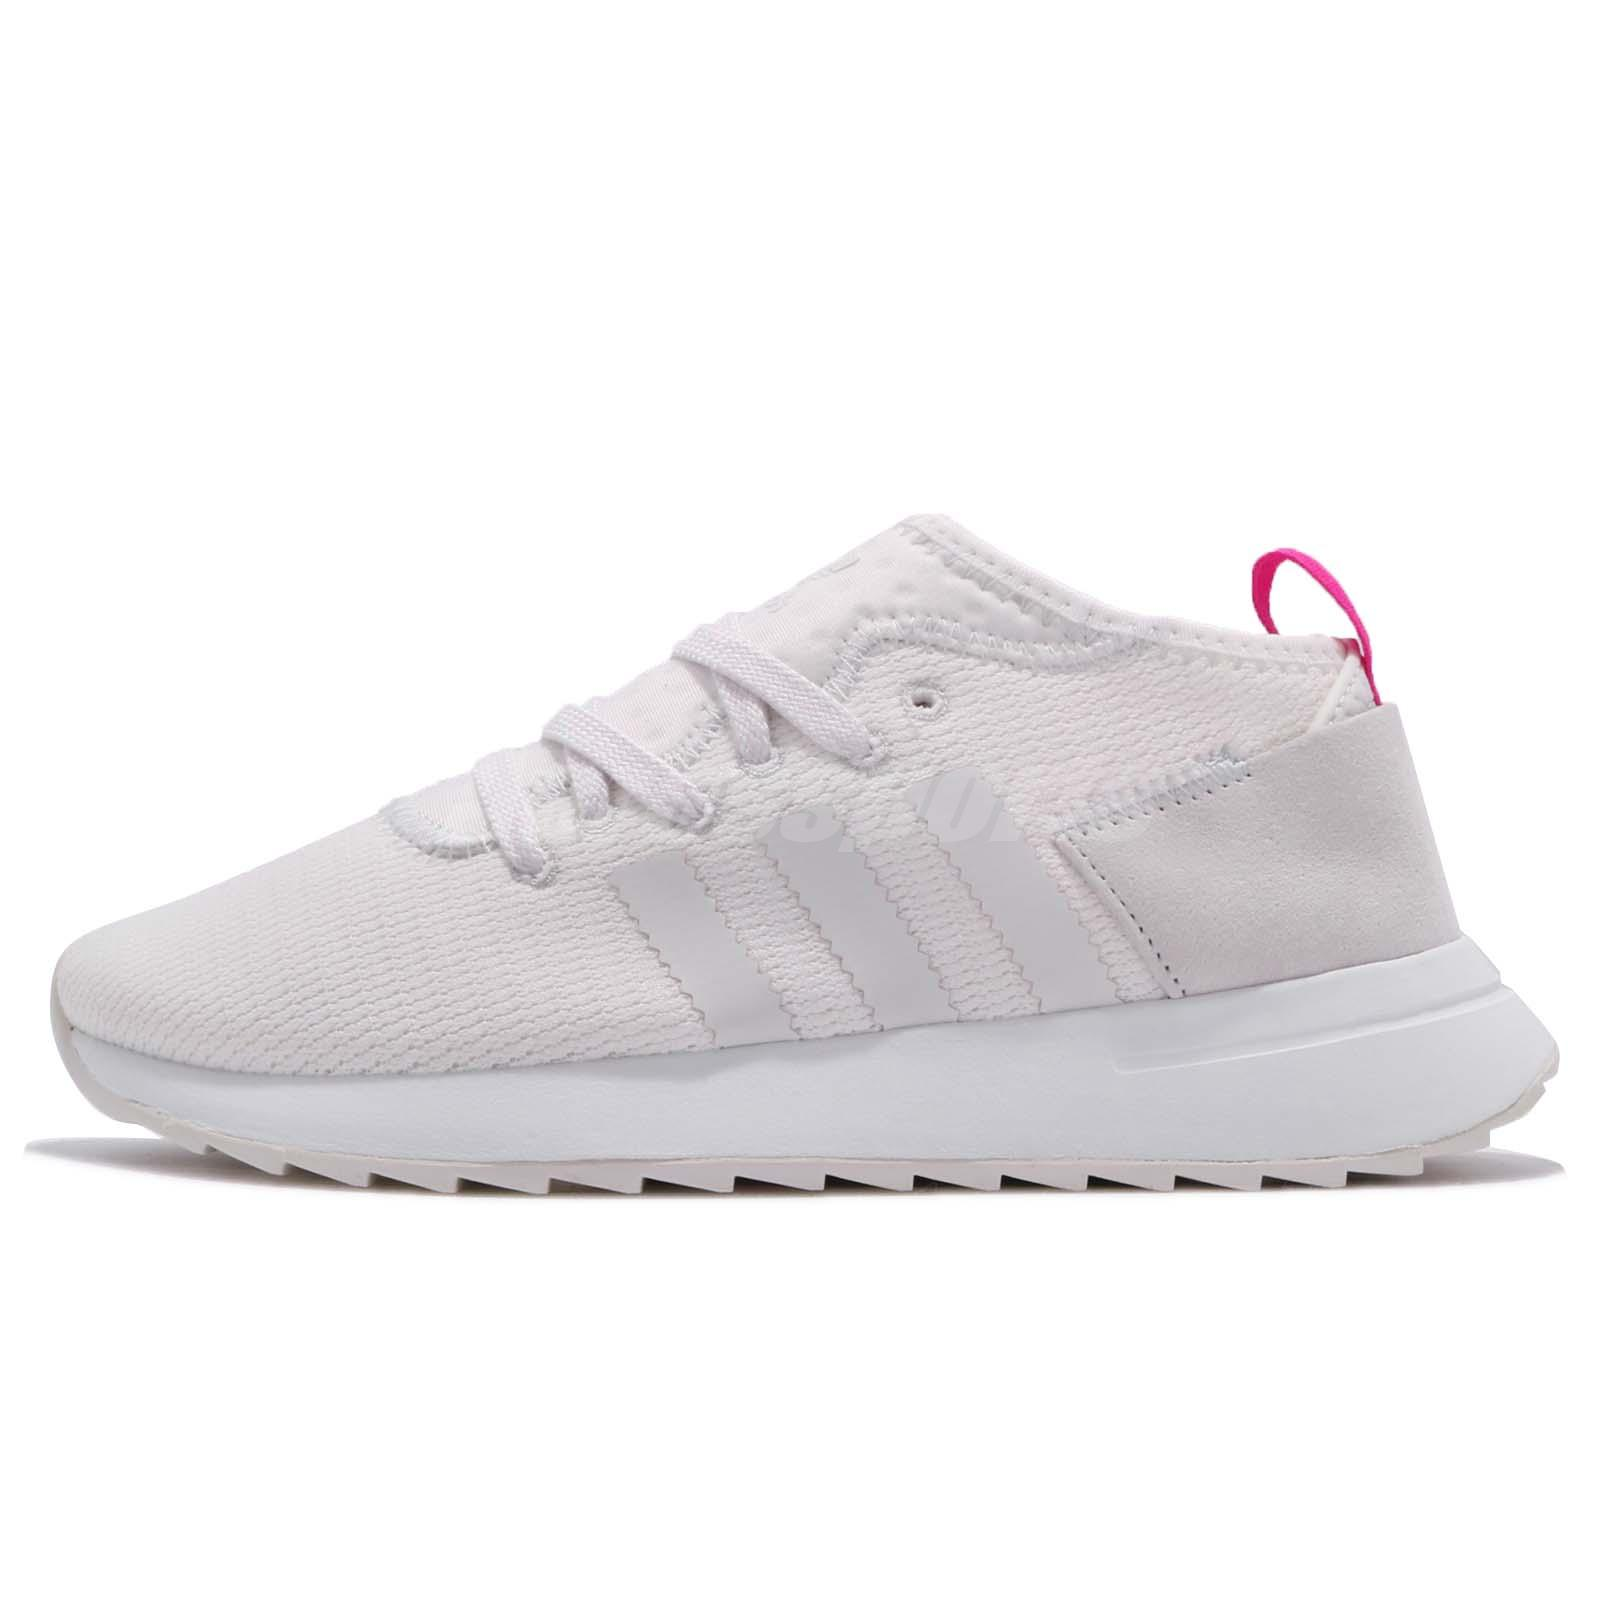 brand new 876ed e137e adidas Originals FLB Mid Flashback White Pink Women Shoes Sneakers CG3772 -  mainstreetblytheville.org